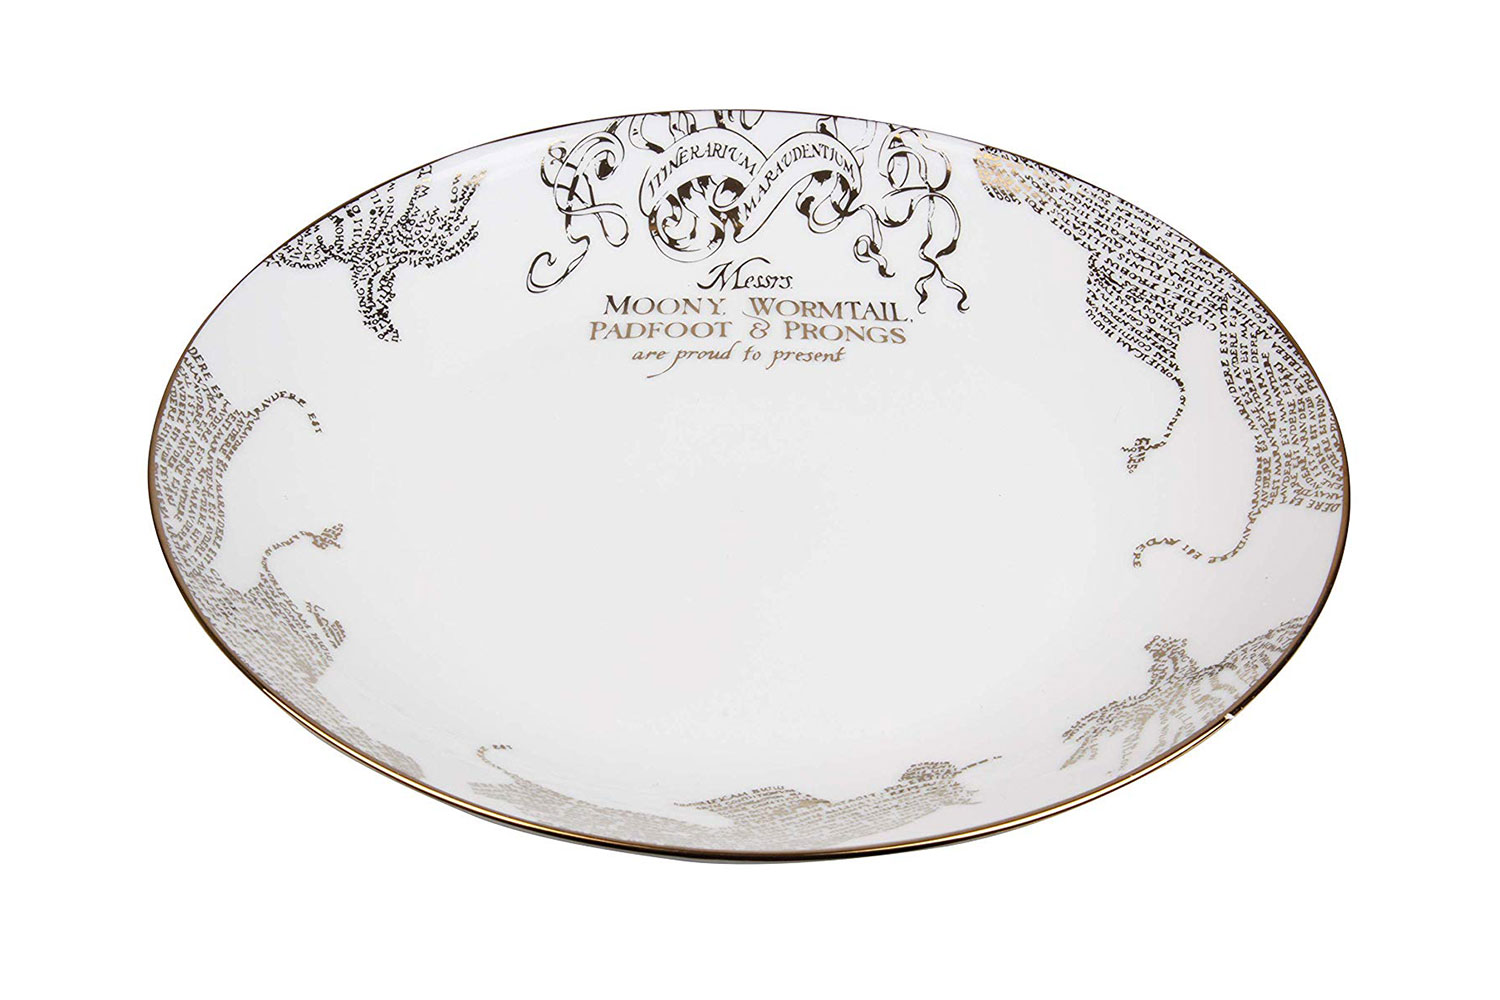 Harry Potter Marauder's Map Porcelain